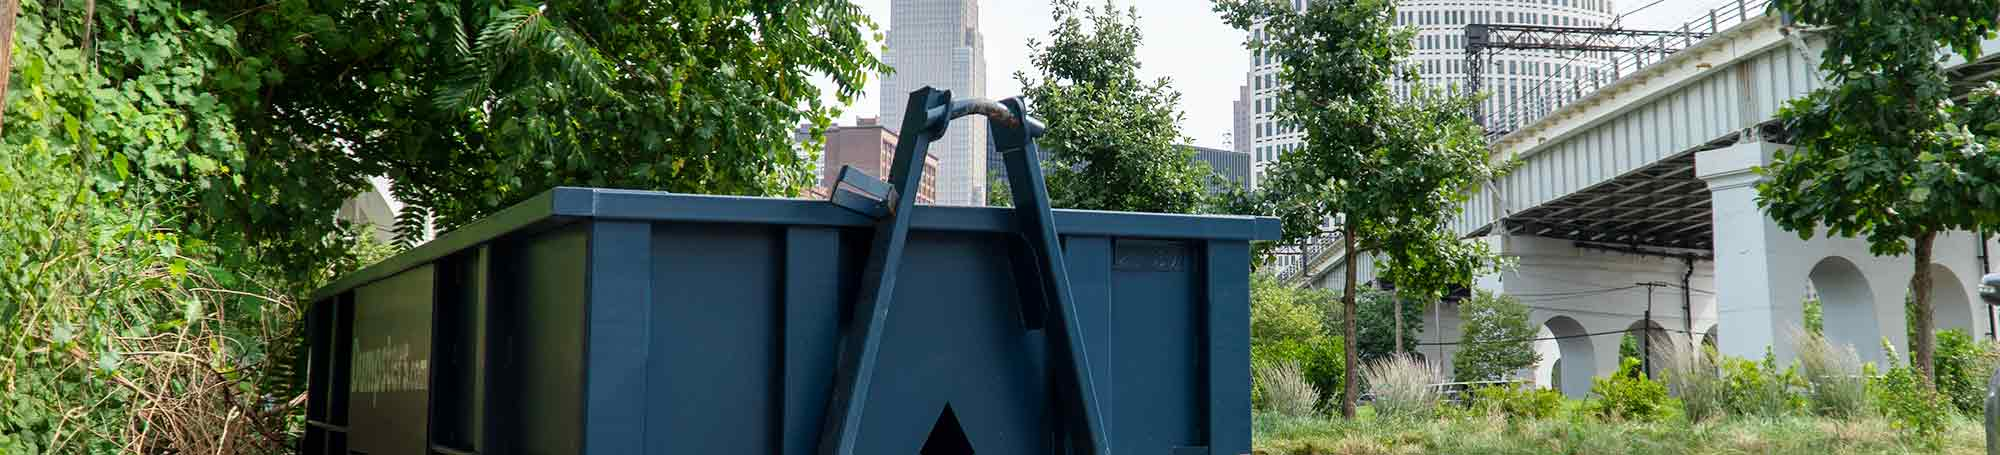 Roll Off Dumpster With Cleveland Skyline in Background.